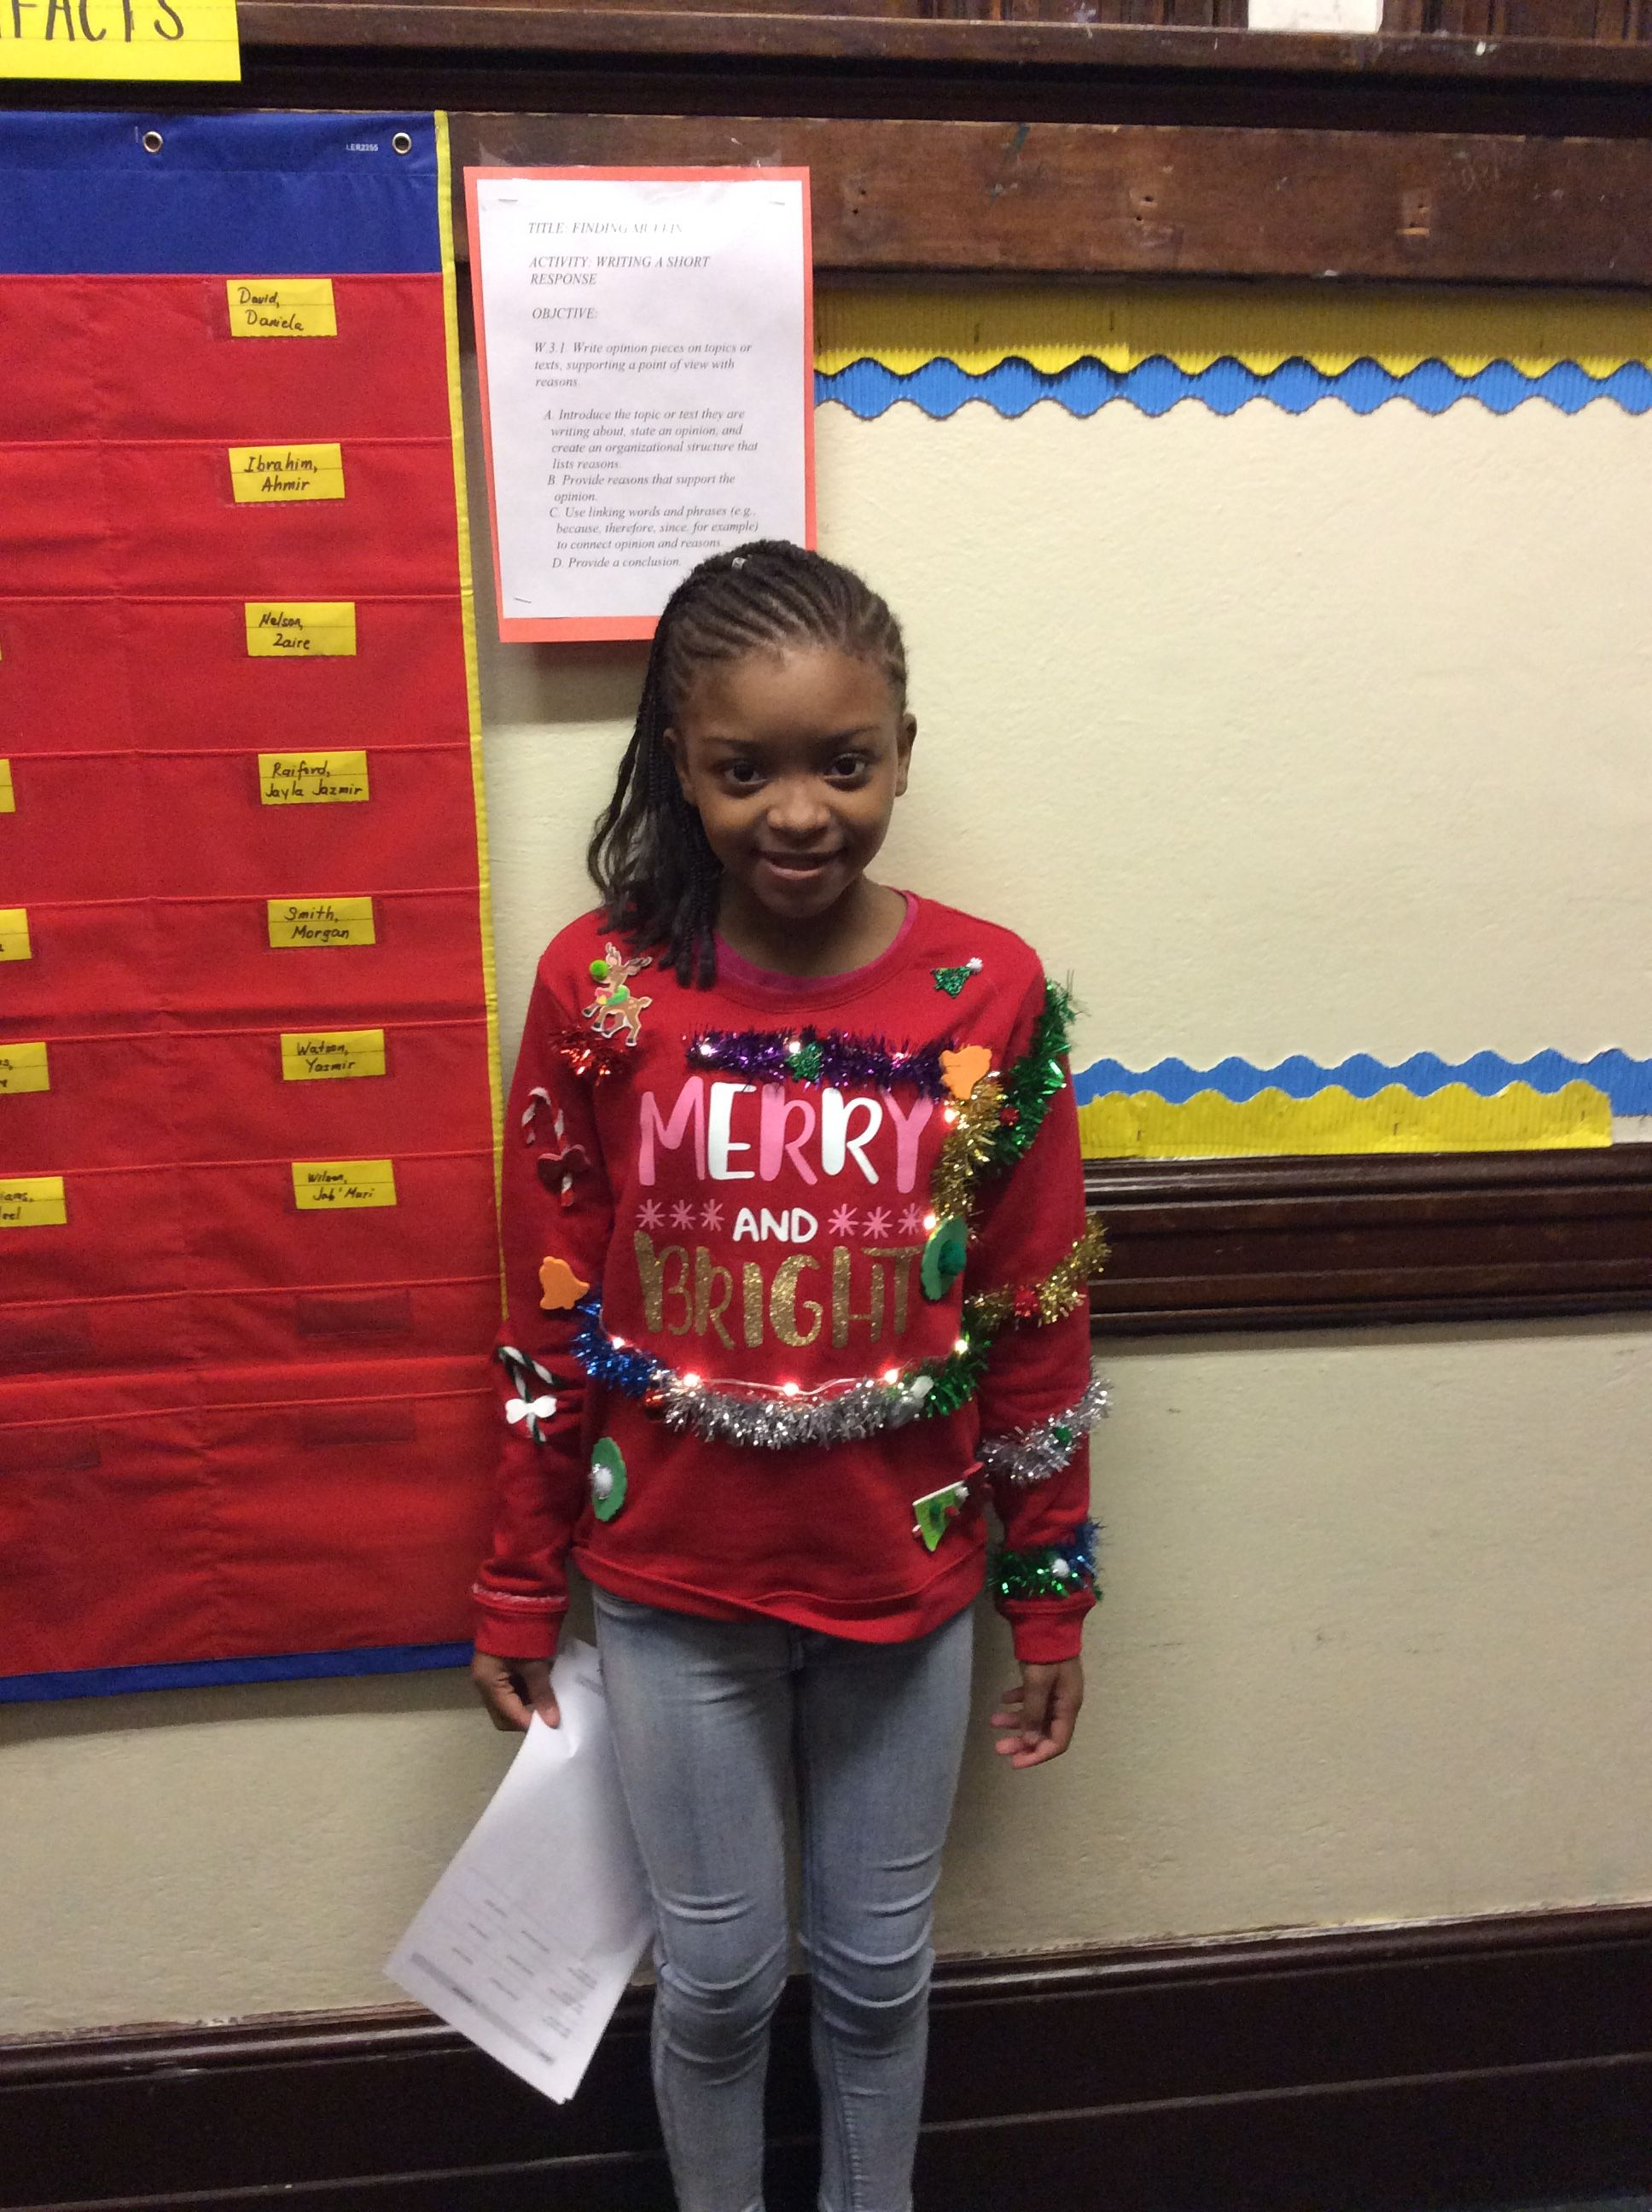 Ugly Red Sweater Day